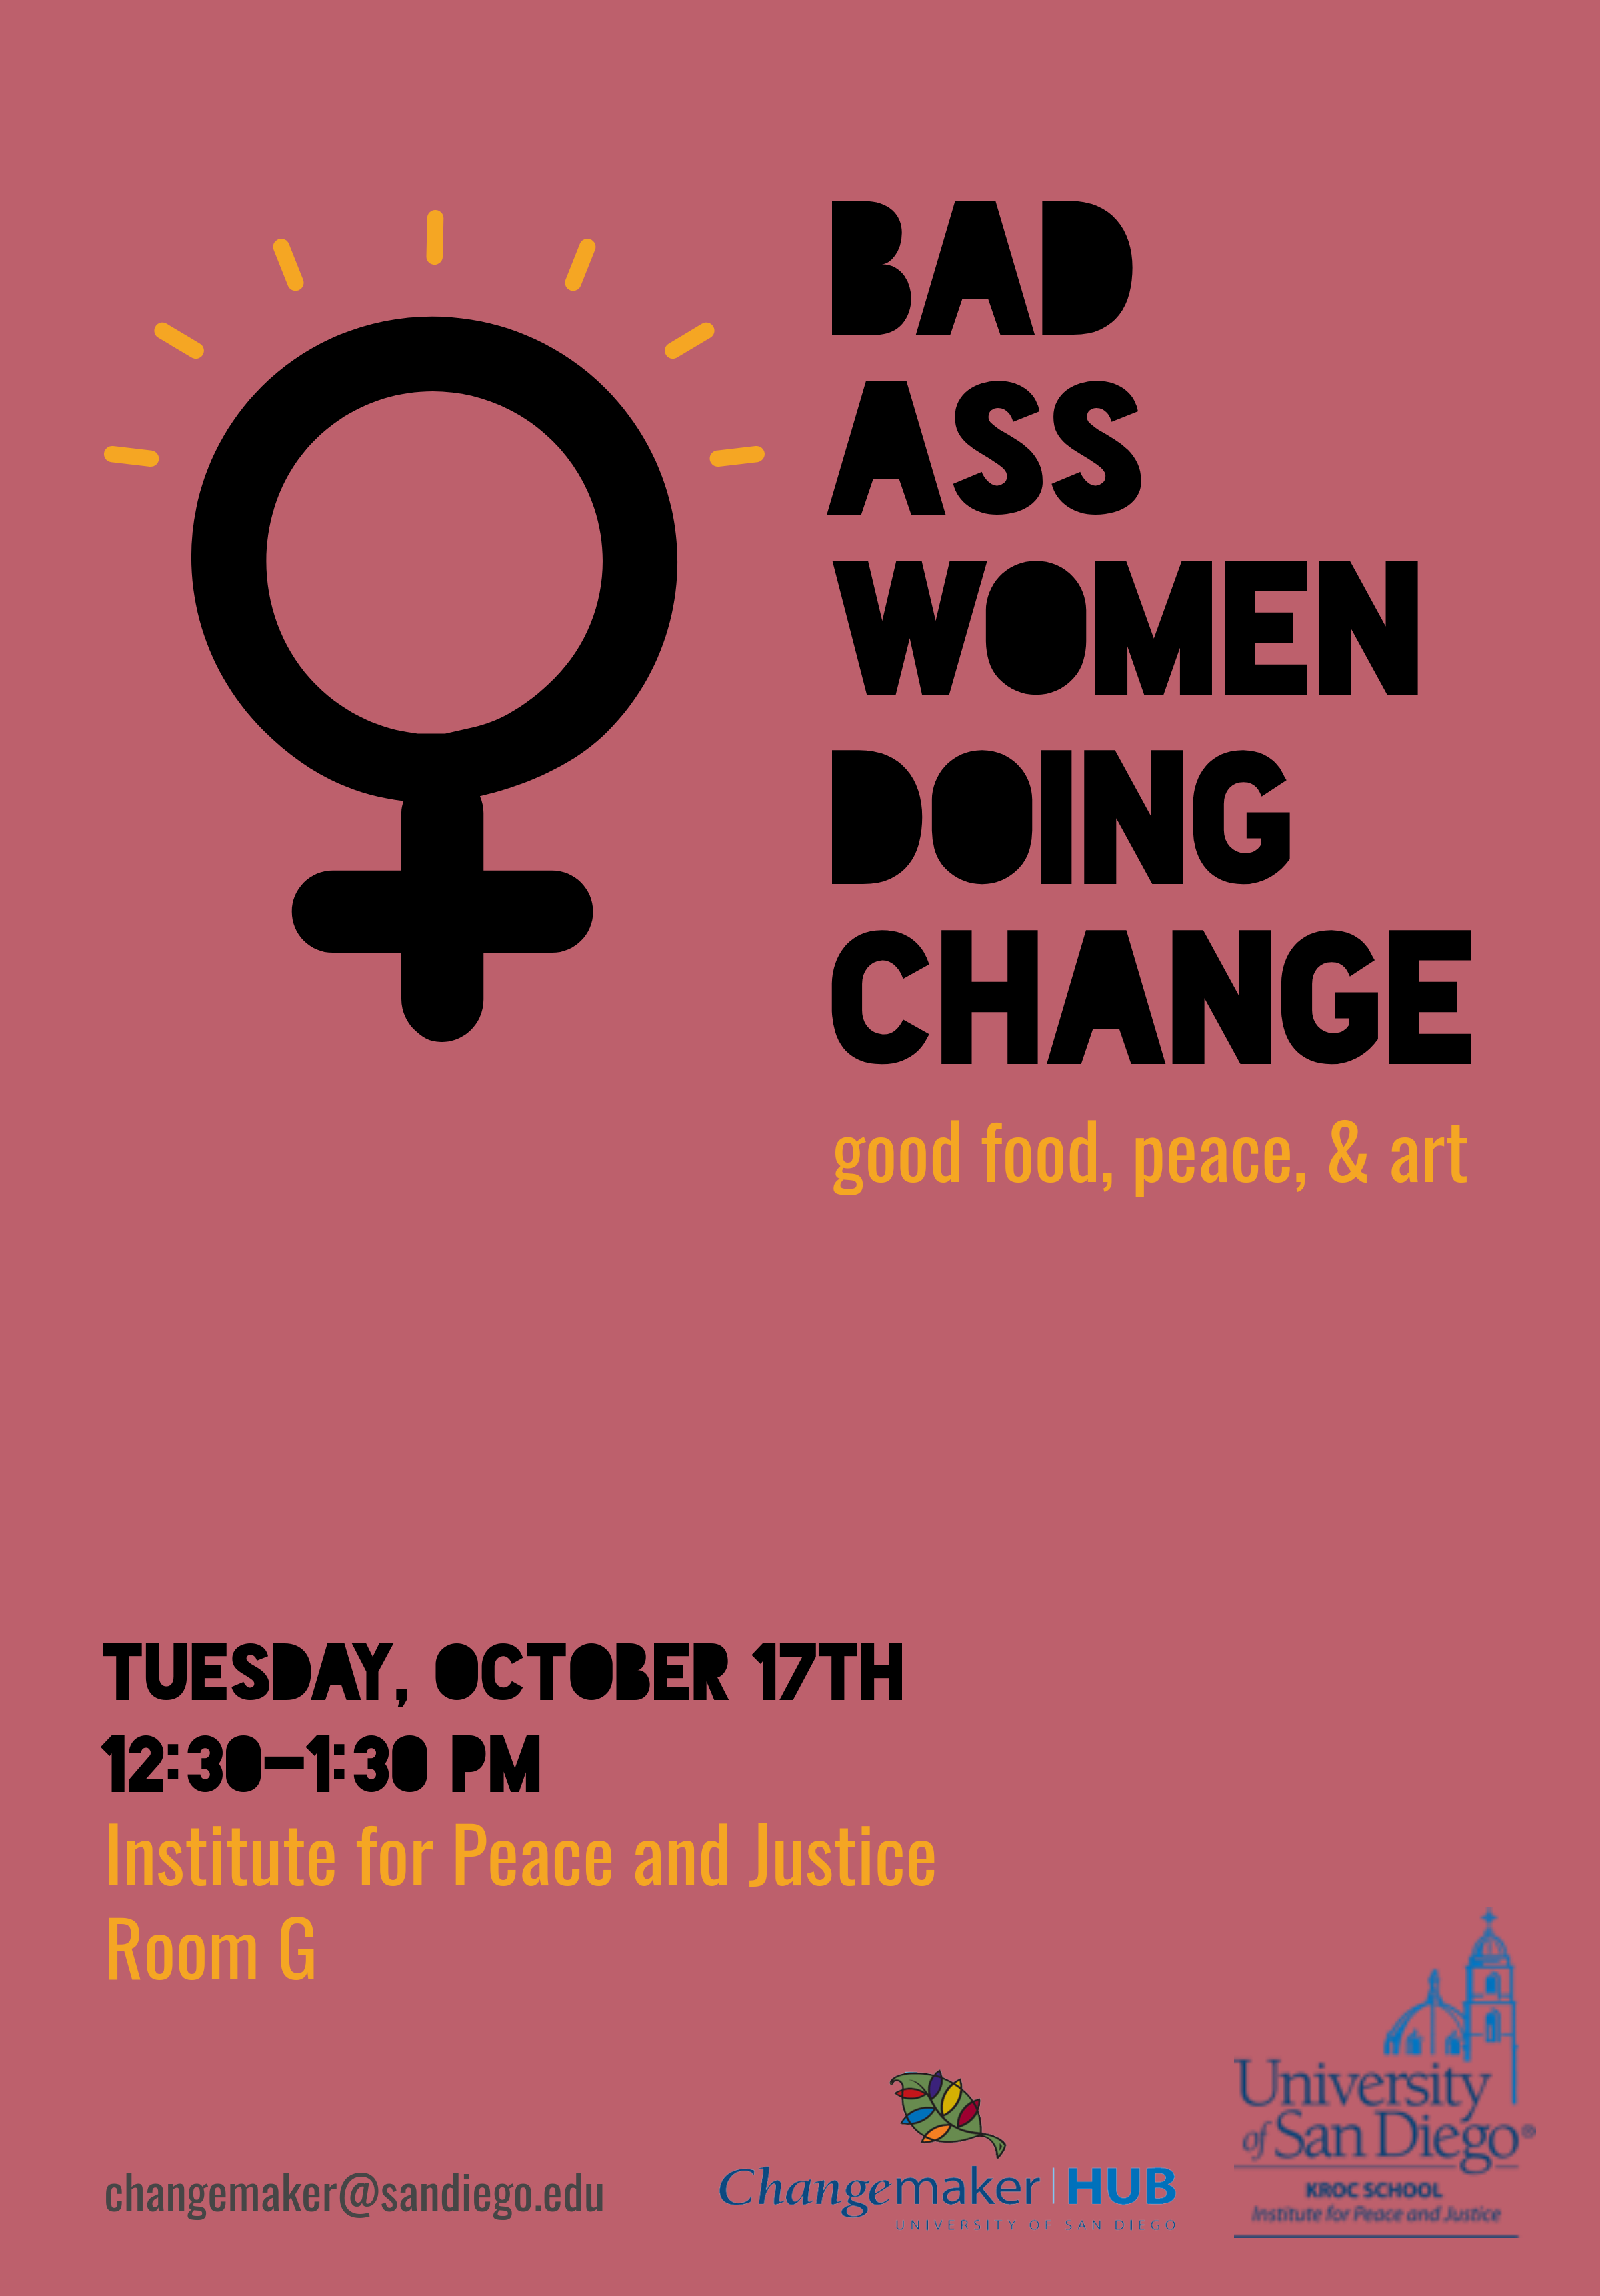 poster for event featuring a female gender icon